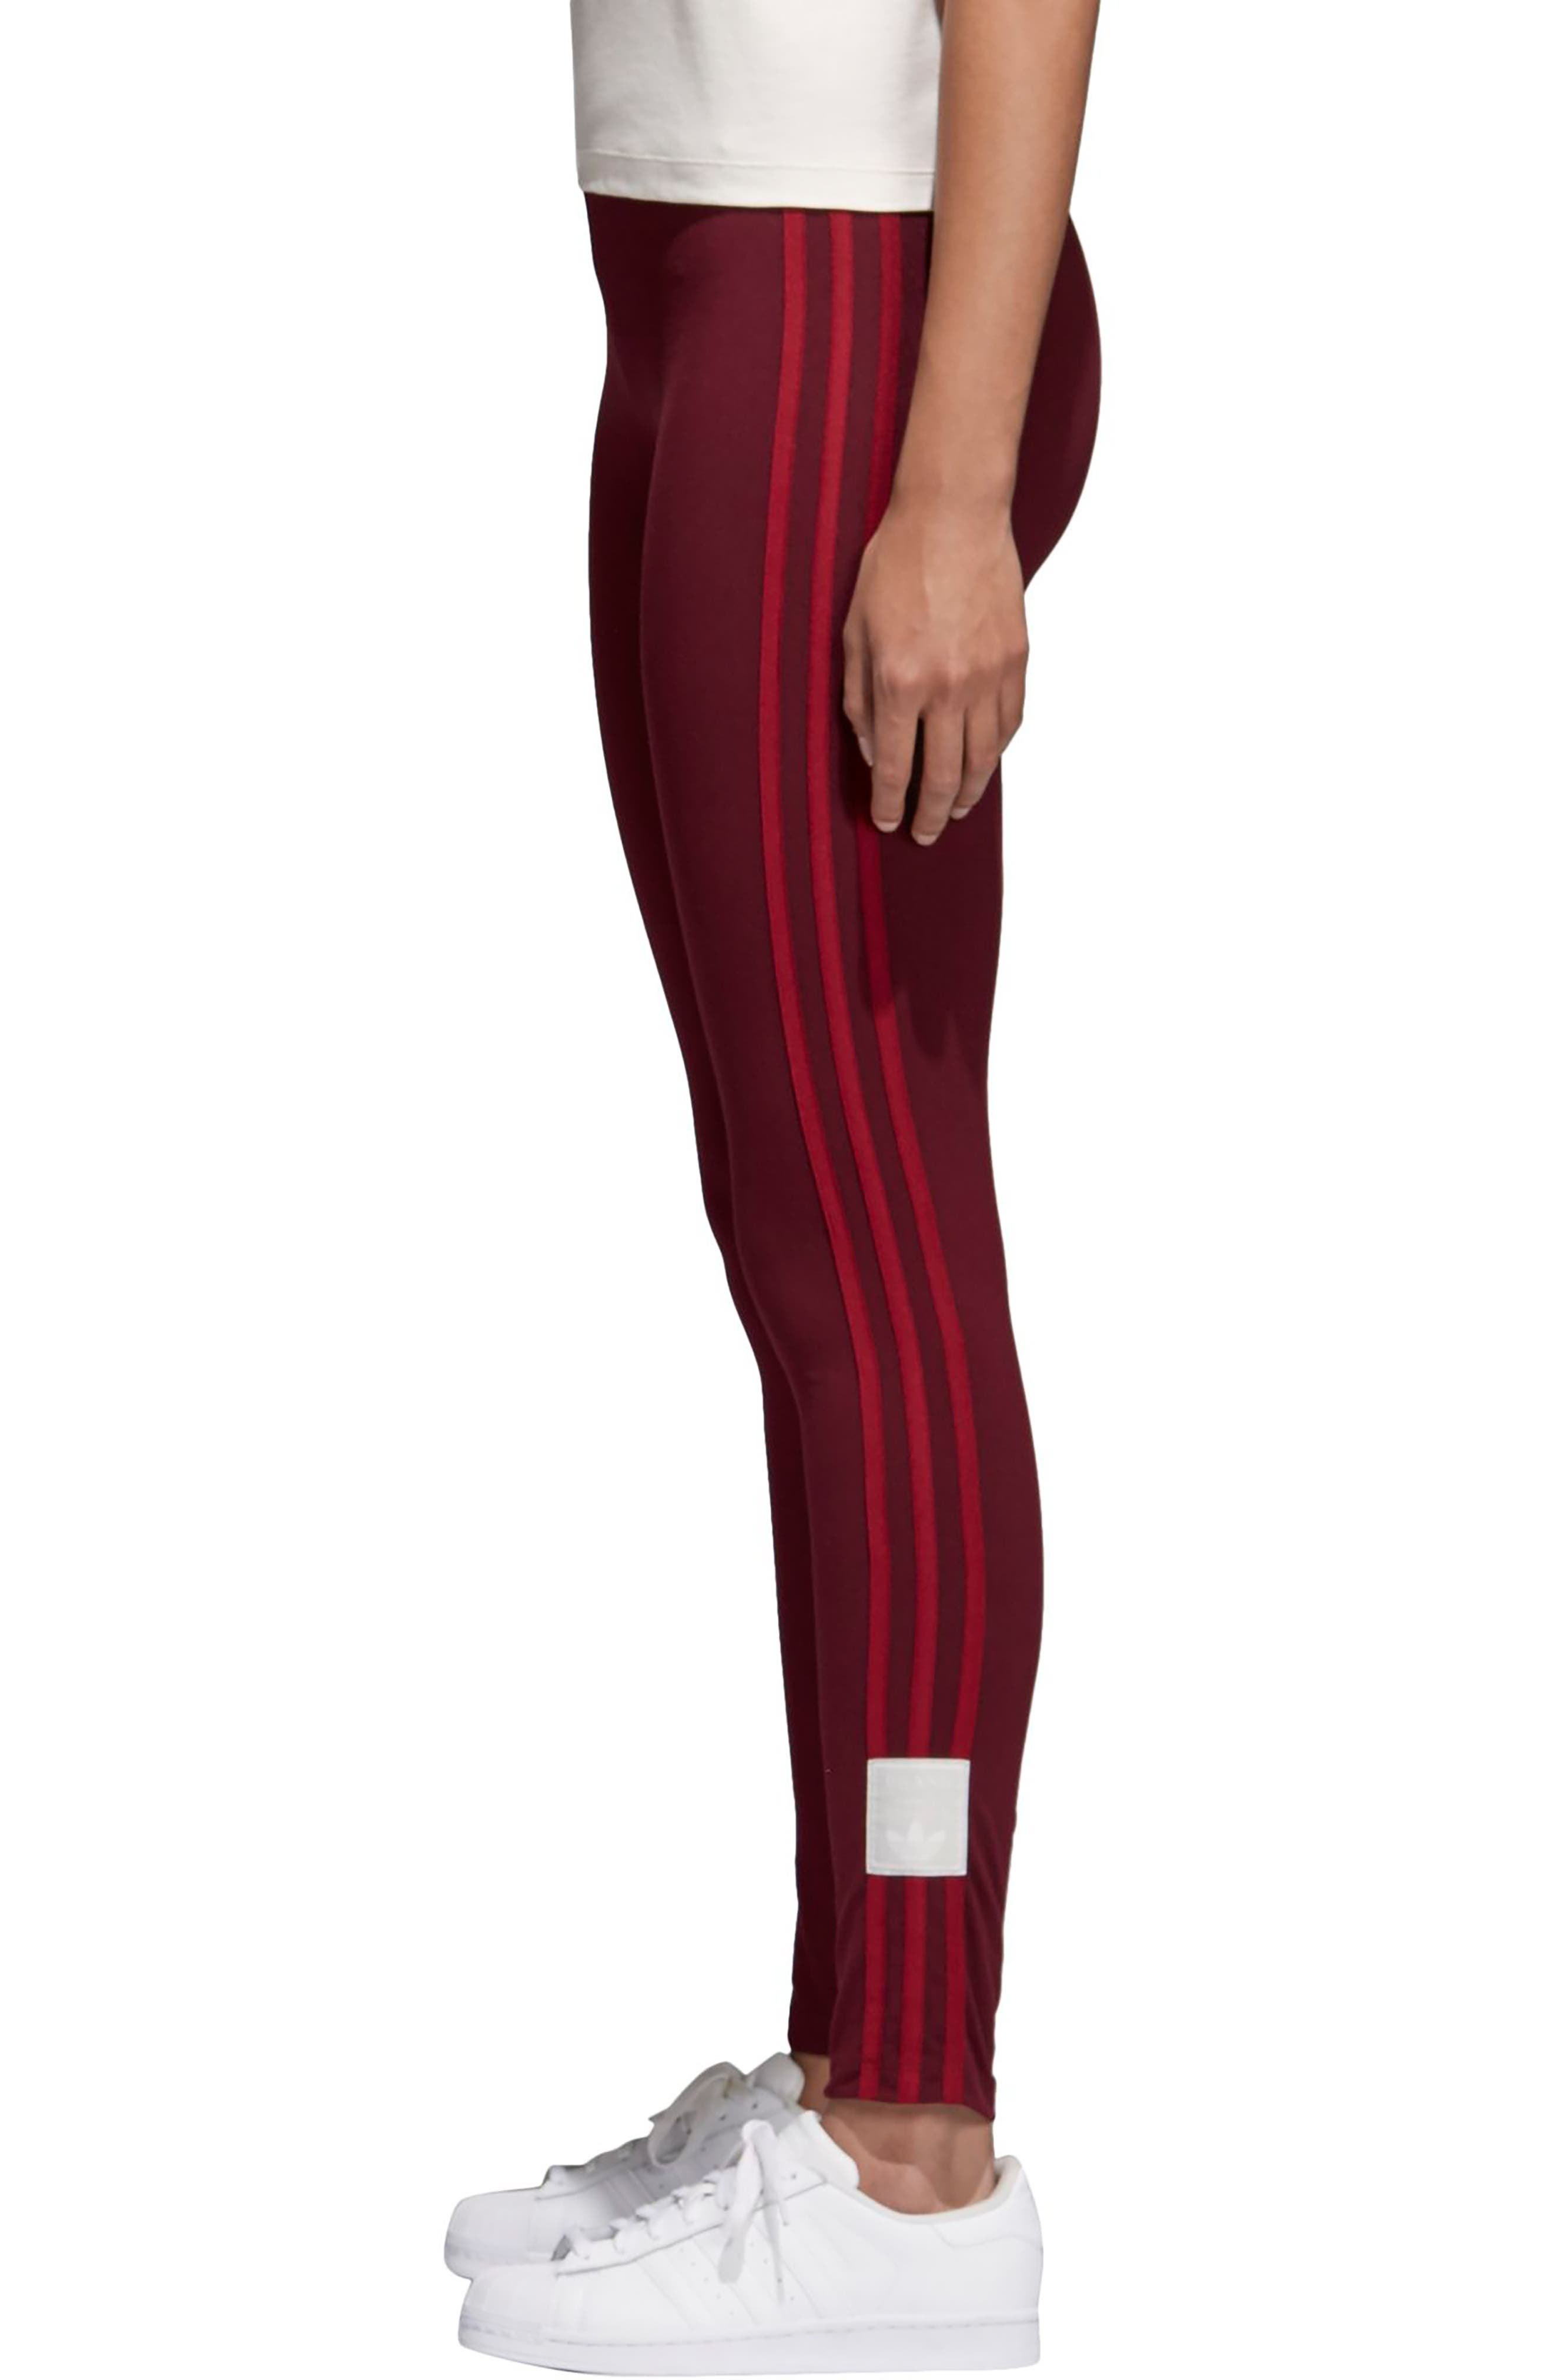 Originals Adibreak Tights,                             Alternate thumbnail 3, color,                             Maroon